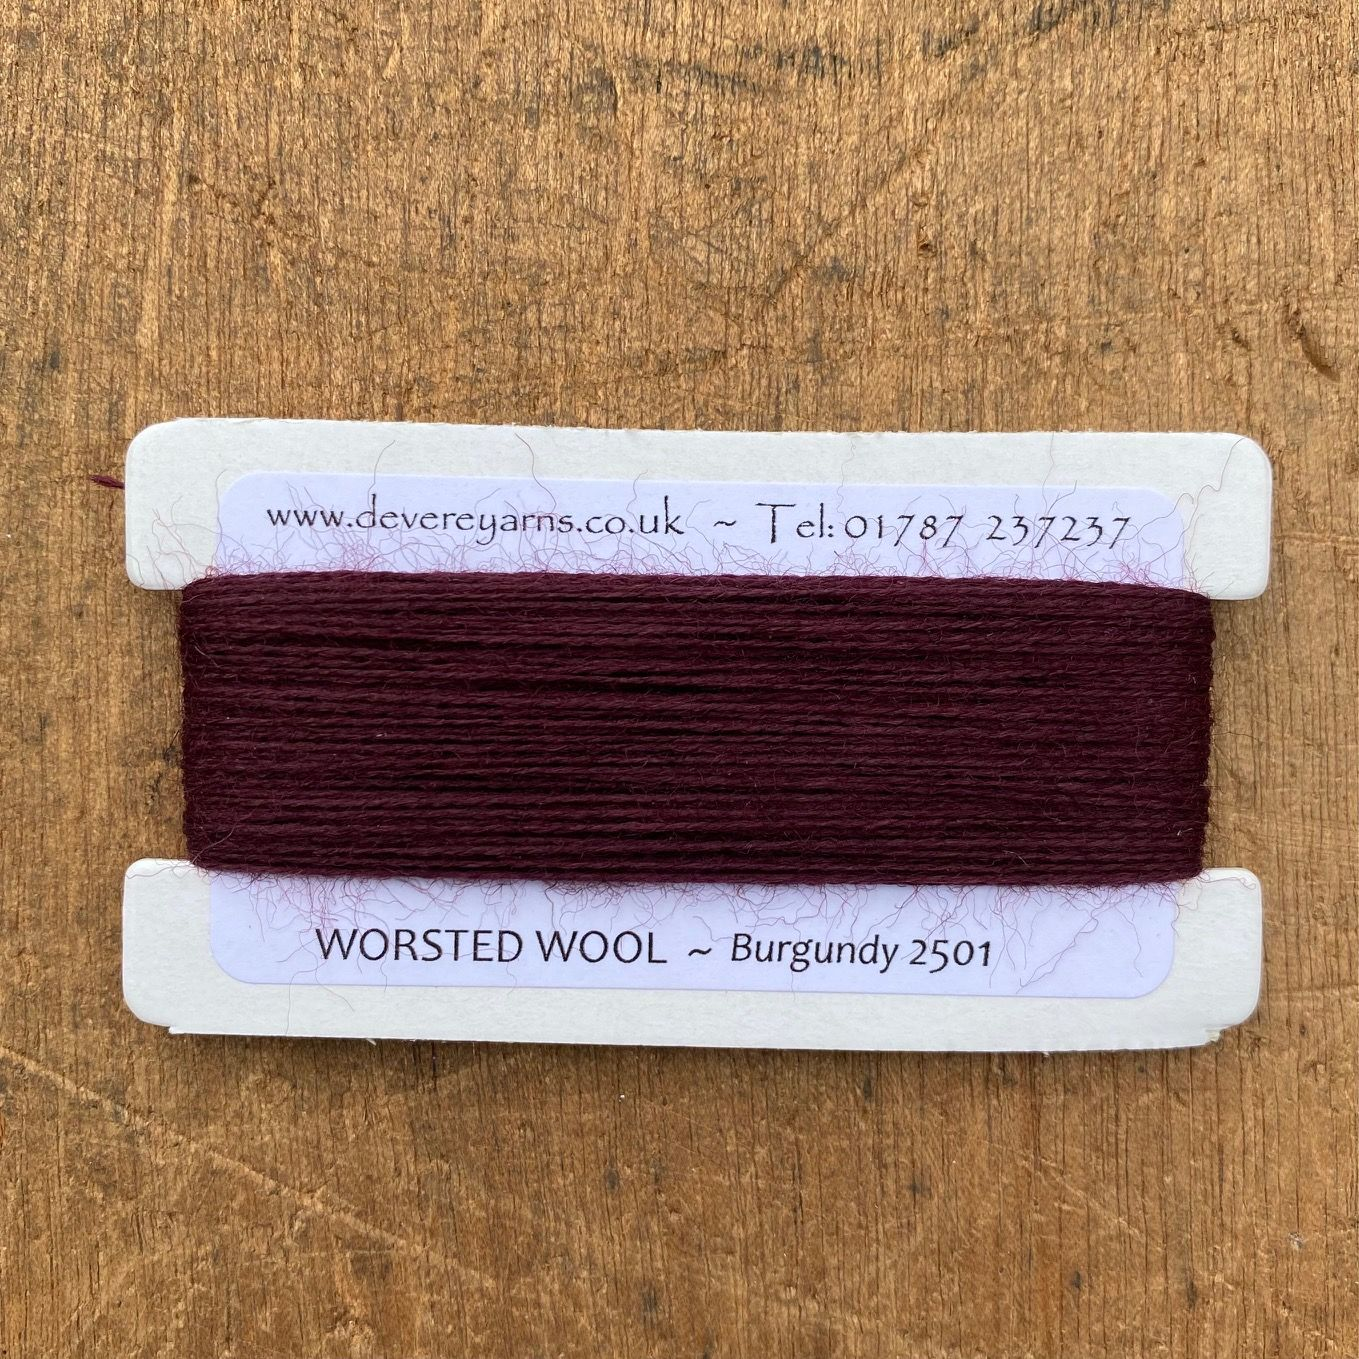 2501 Burgundy - 2/25's Worsted Wool Count - Embroidery Thread